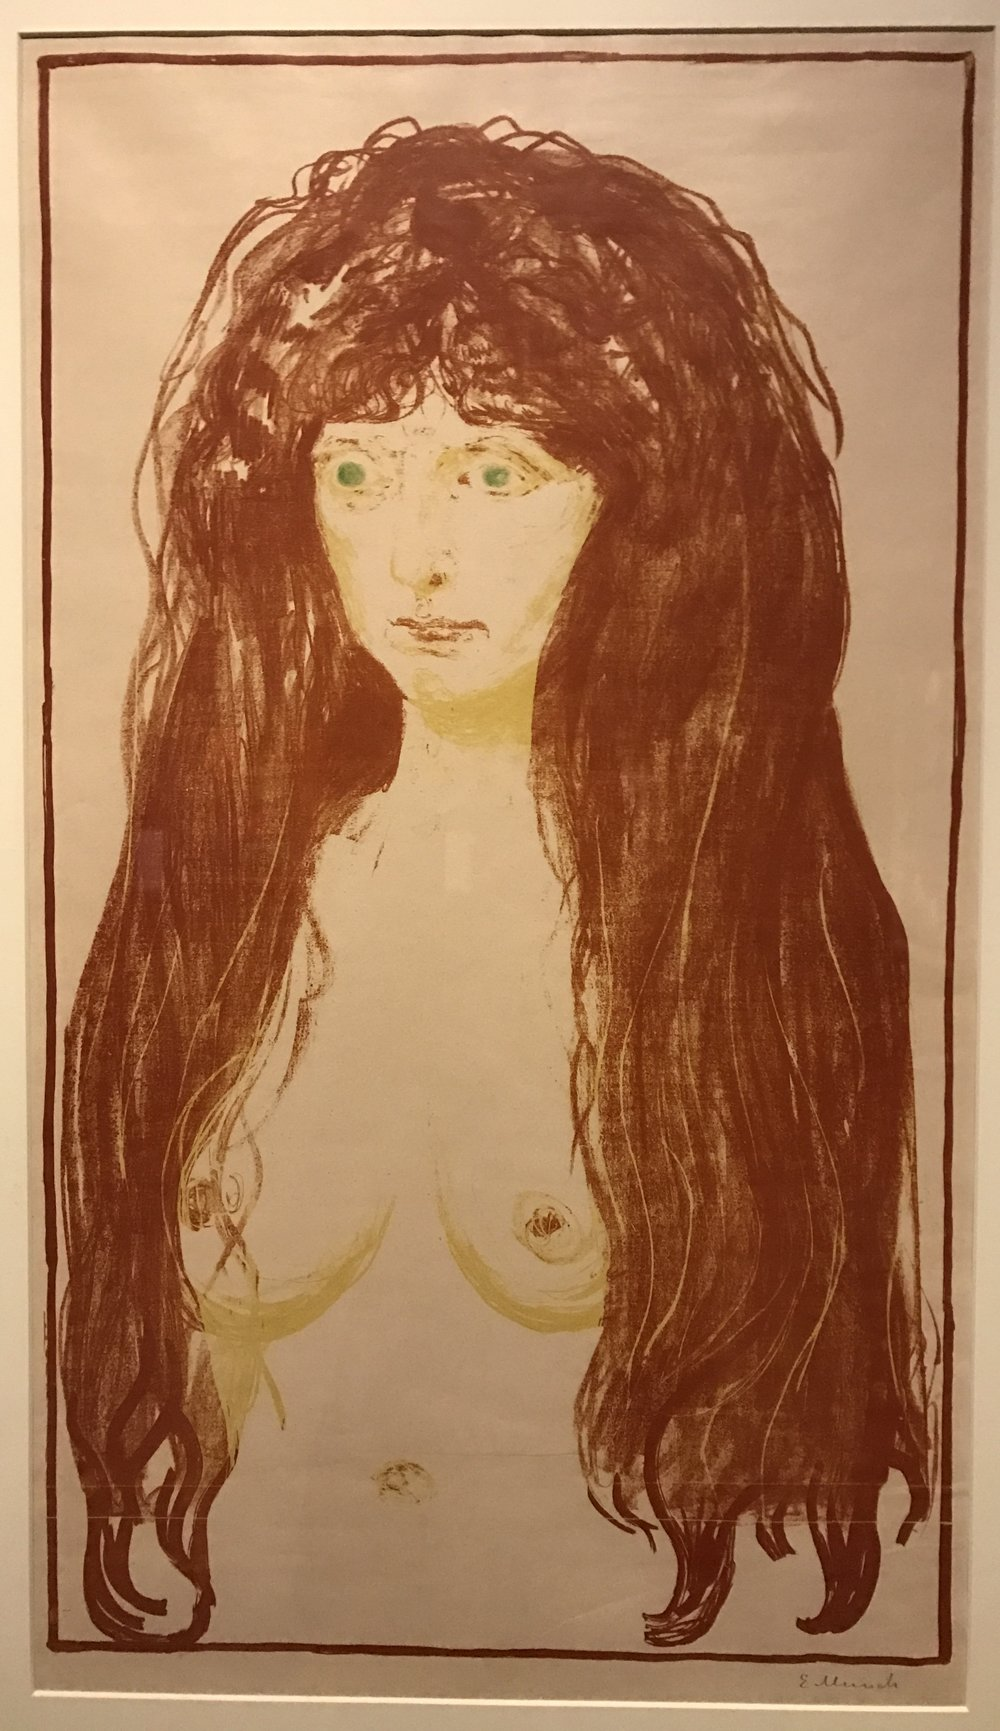 Edvard Munch, The Sin, 1902